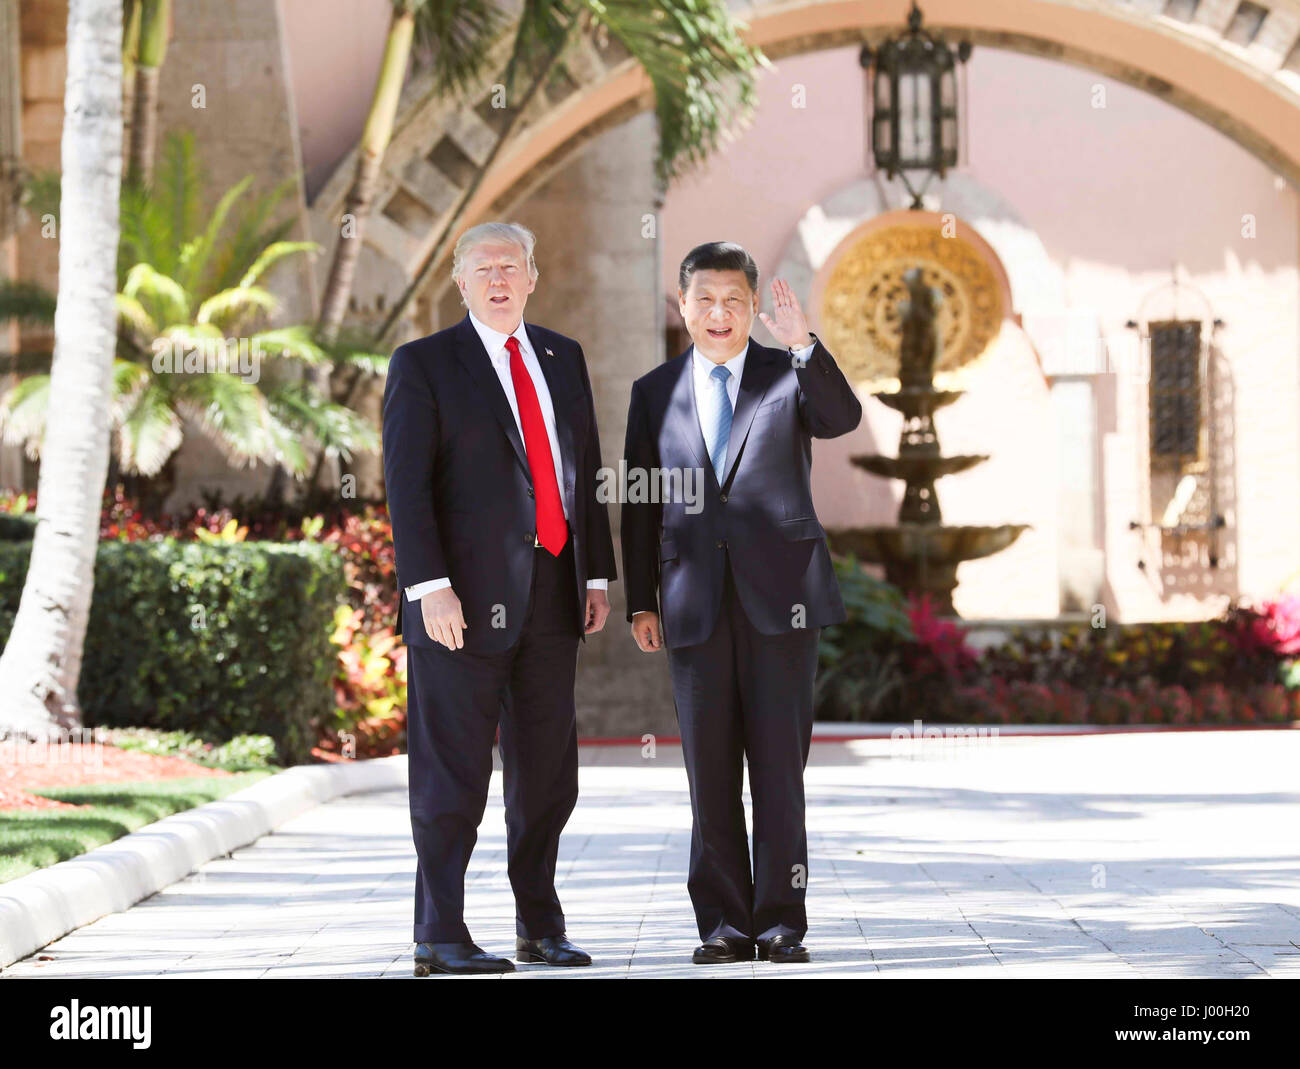 Mar-a-Lago, Florida, USA. 07th Apr, 2017. Chinese President Xi Jinping (R) and his U.S. counterpart Donald Trump - Stock Image